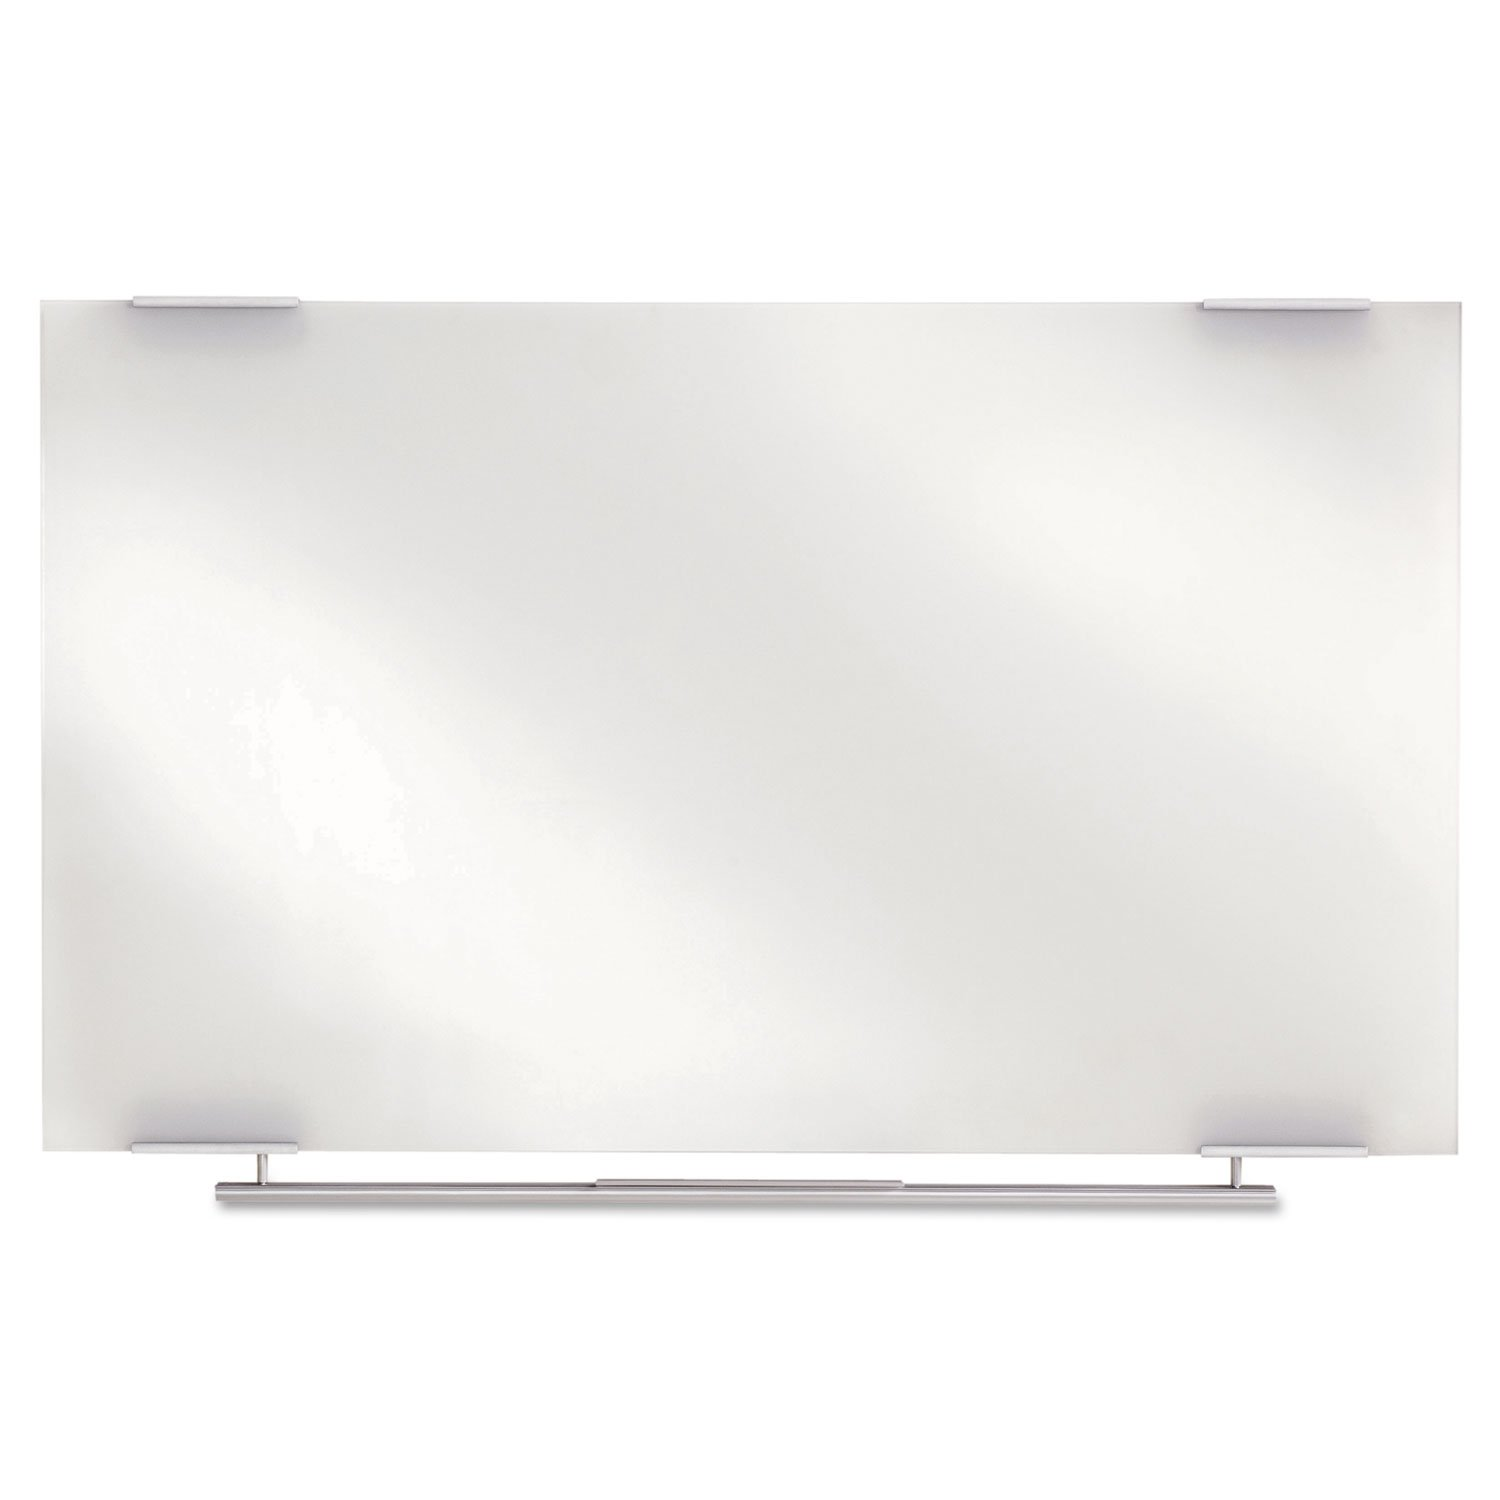 ICE31140 UNITED STATIONERS (OP) BOARD,DRIERS,GLS,48X36,AL